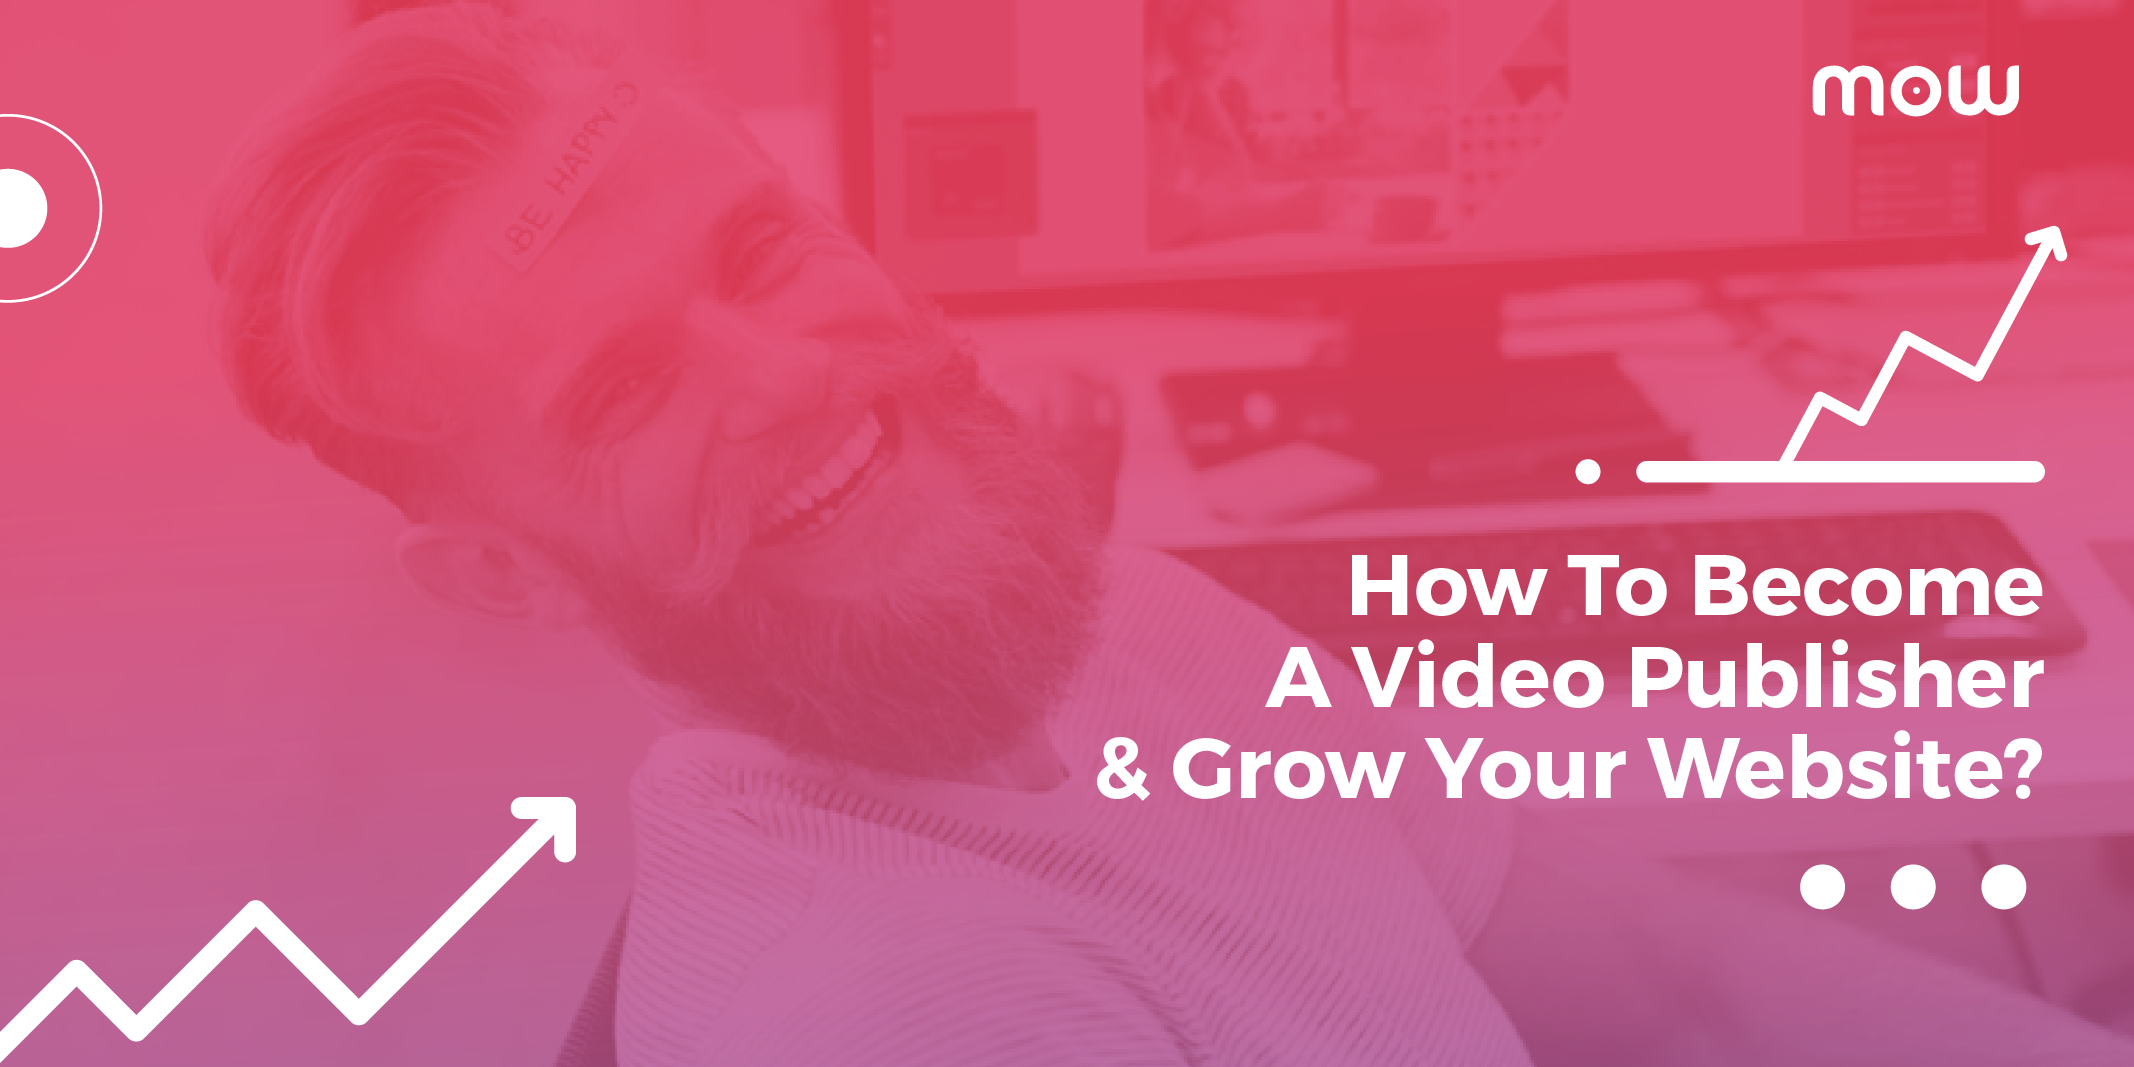 How To Become A Video Publisher & Grow Your Website?